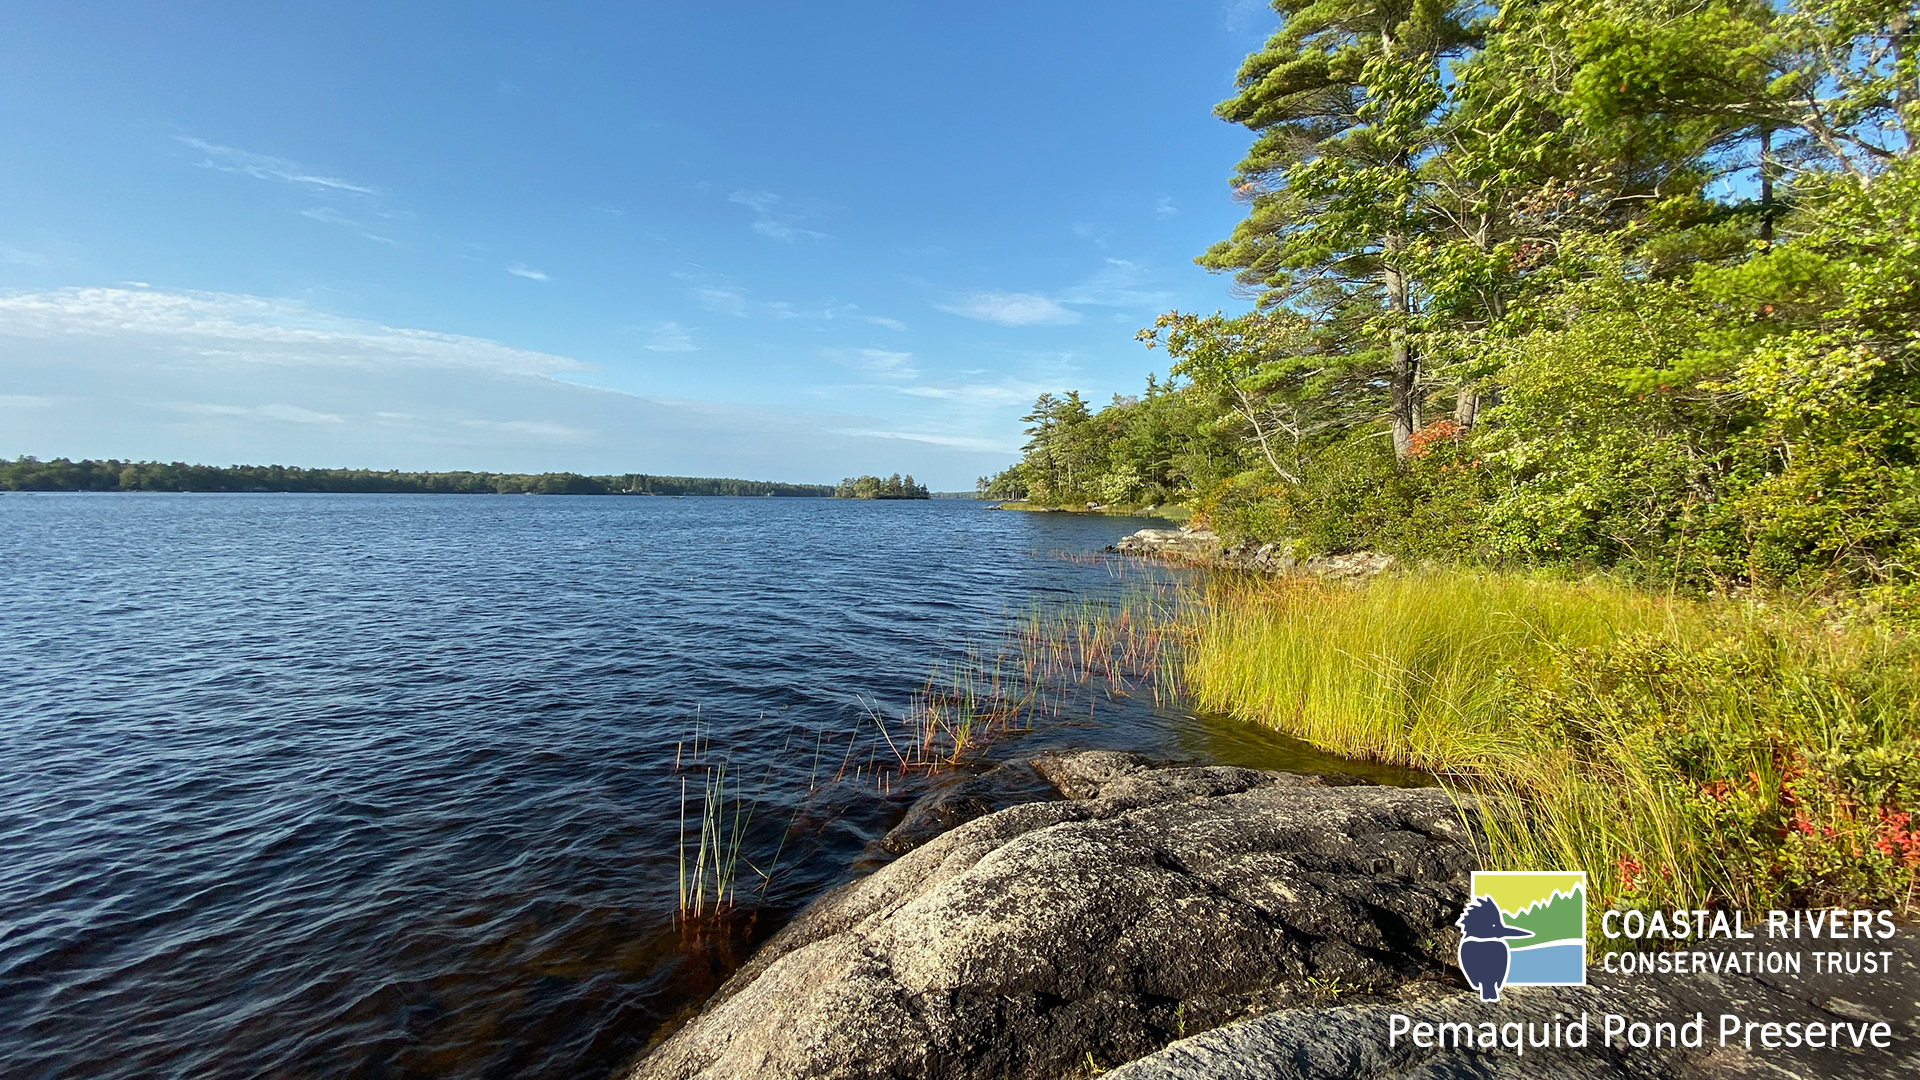 view from shore at Pemaquid Pond